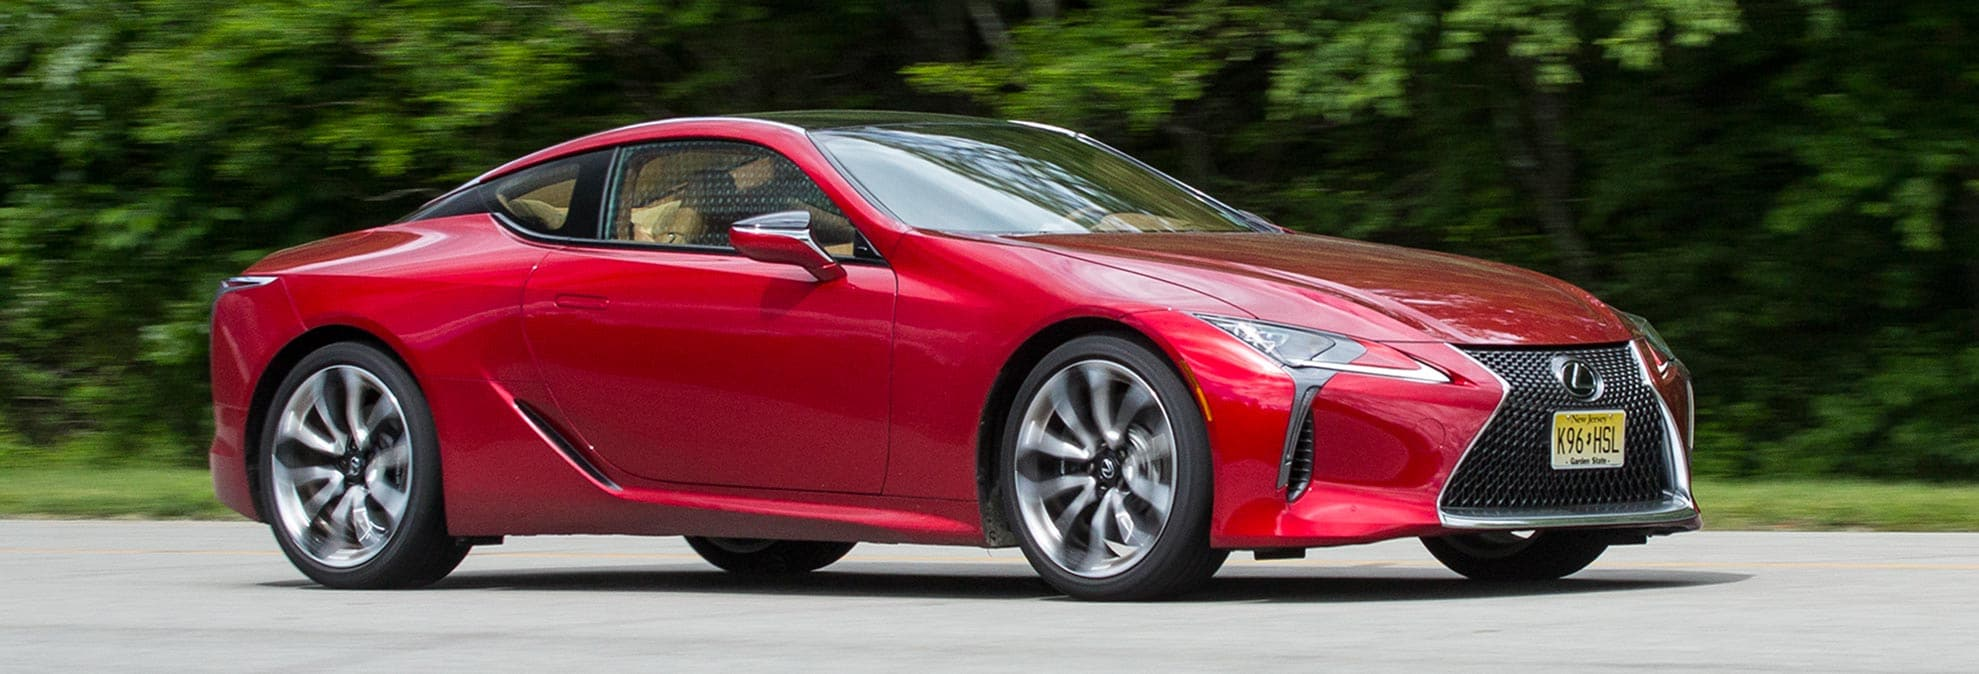 Lexus Sport Coupe >> First Drive: Lexus LC500 Sport Coupe - Consumer Reports